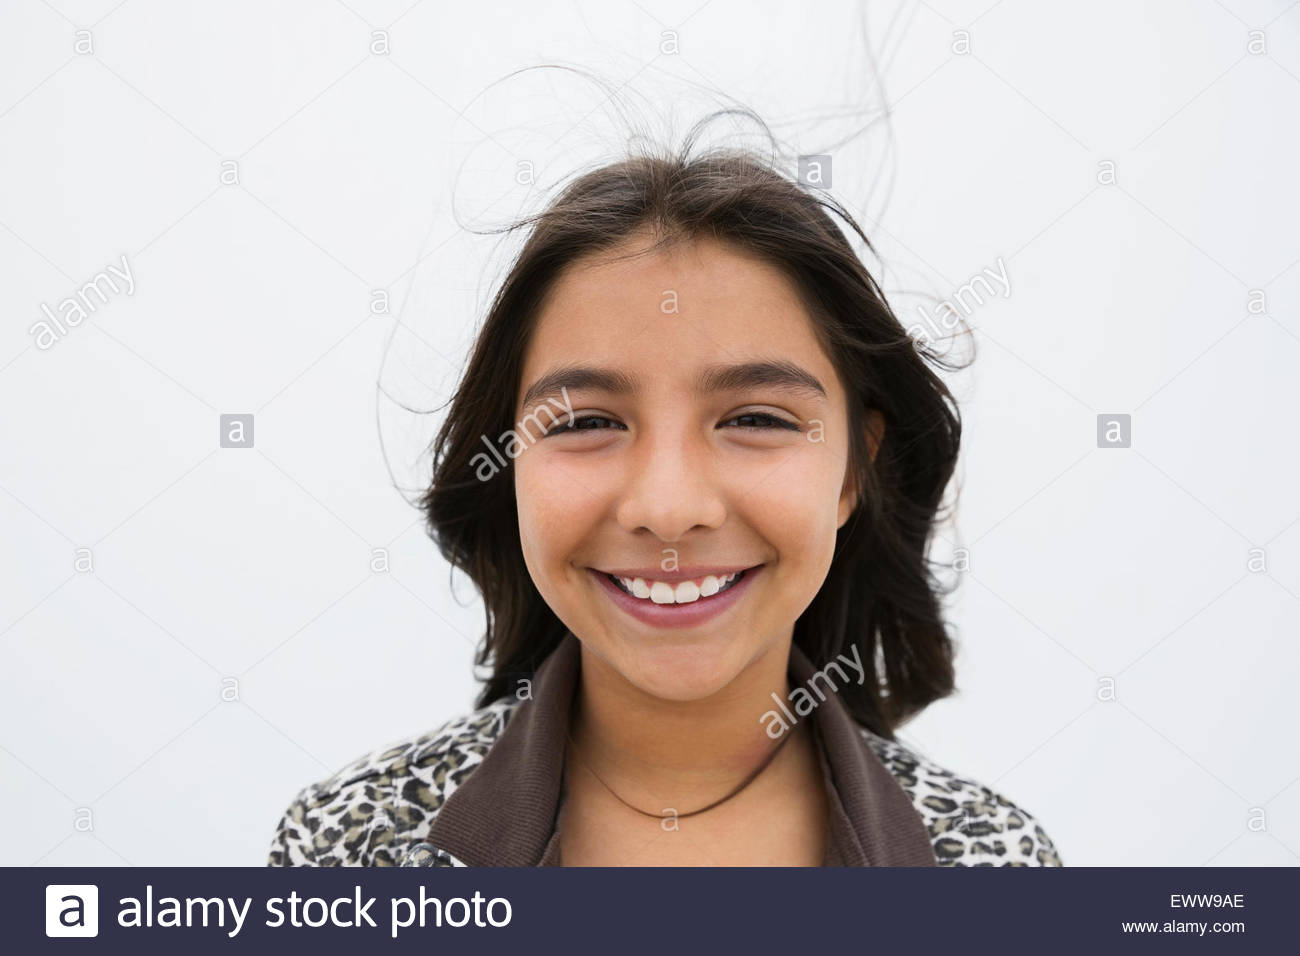 Portrait smiling brunette girl Photo Stock